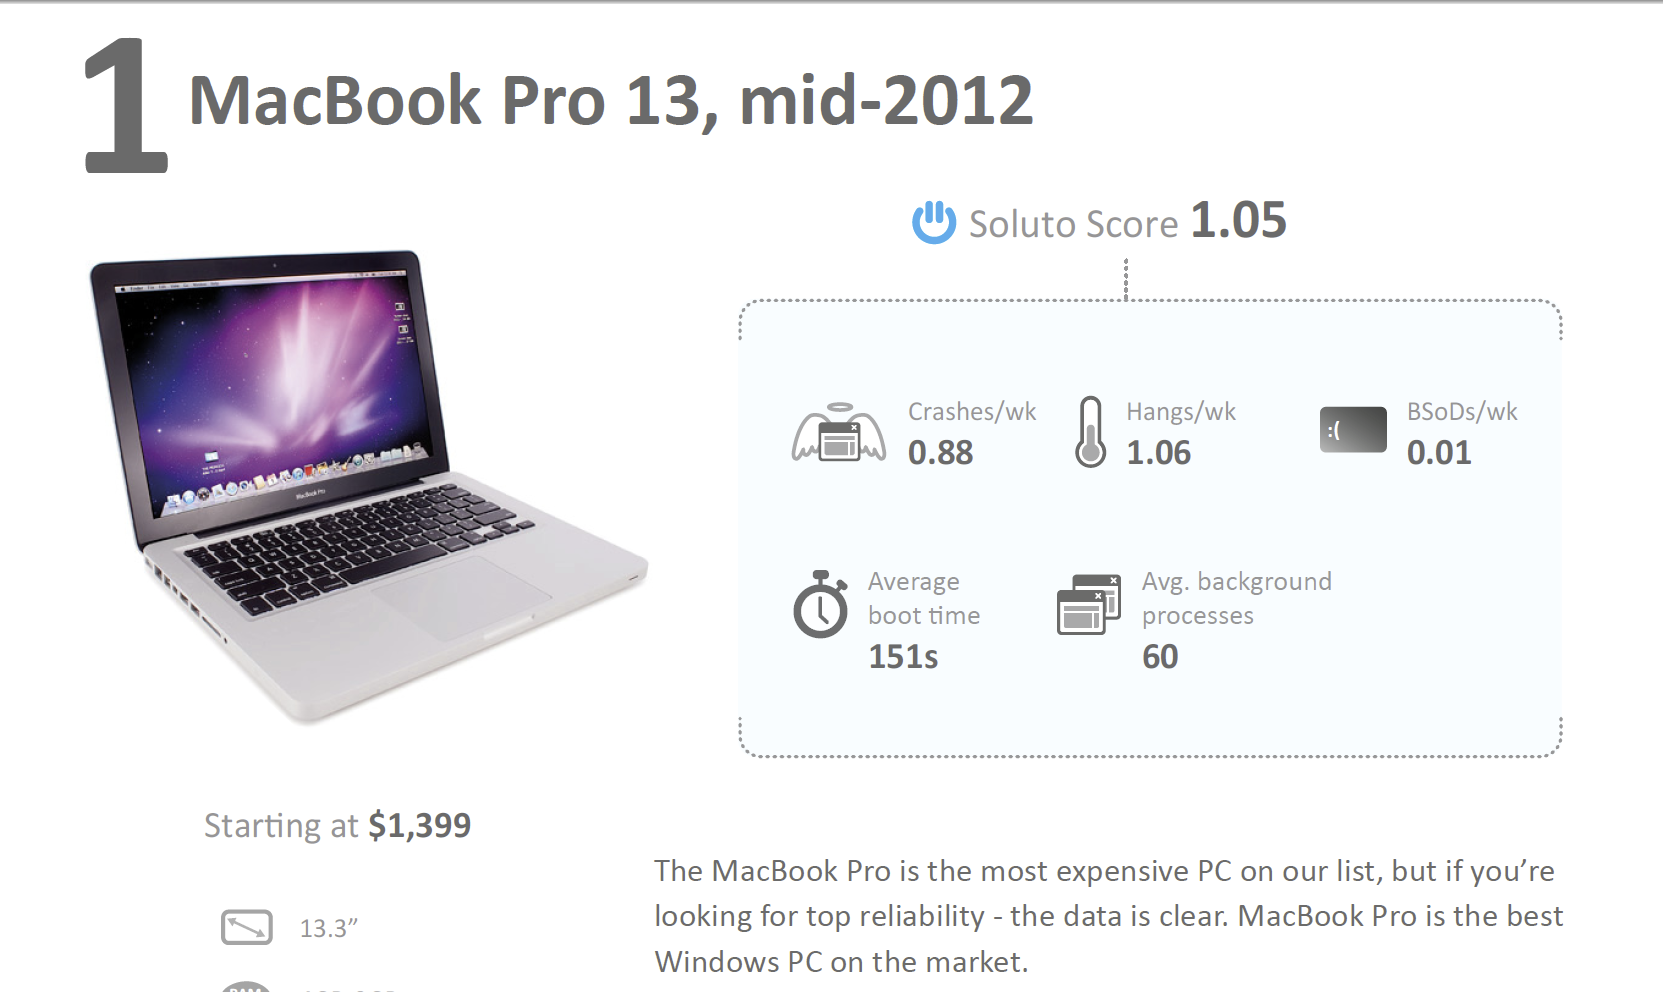 "crowns the mid-2012 MacBook Pro 13"" as the most reliable Windows PC"